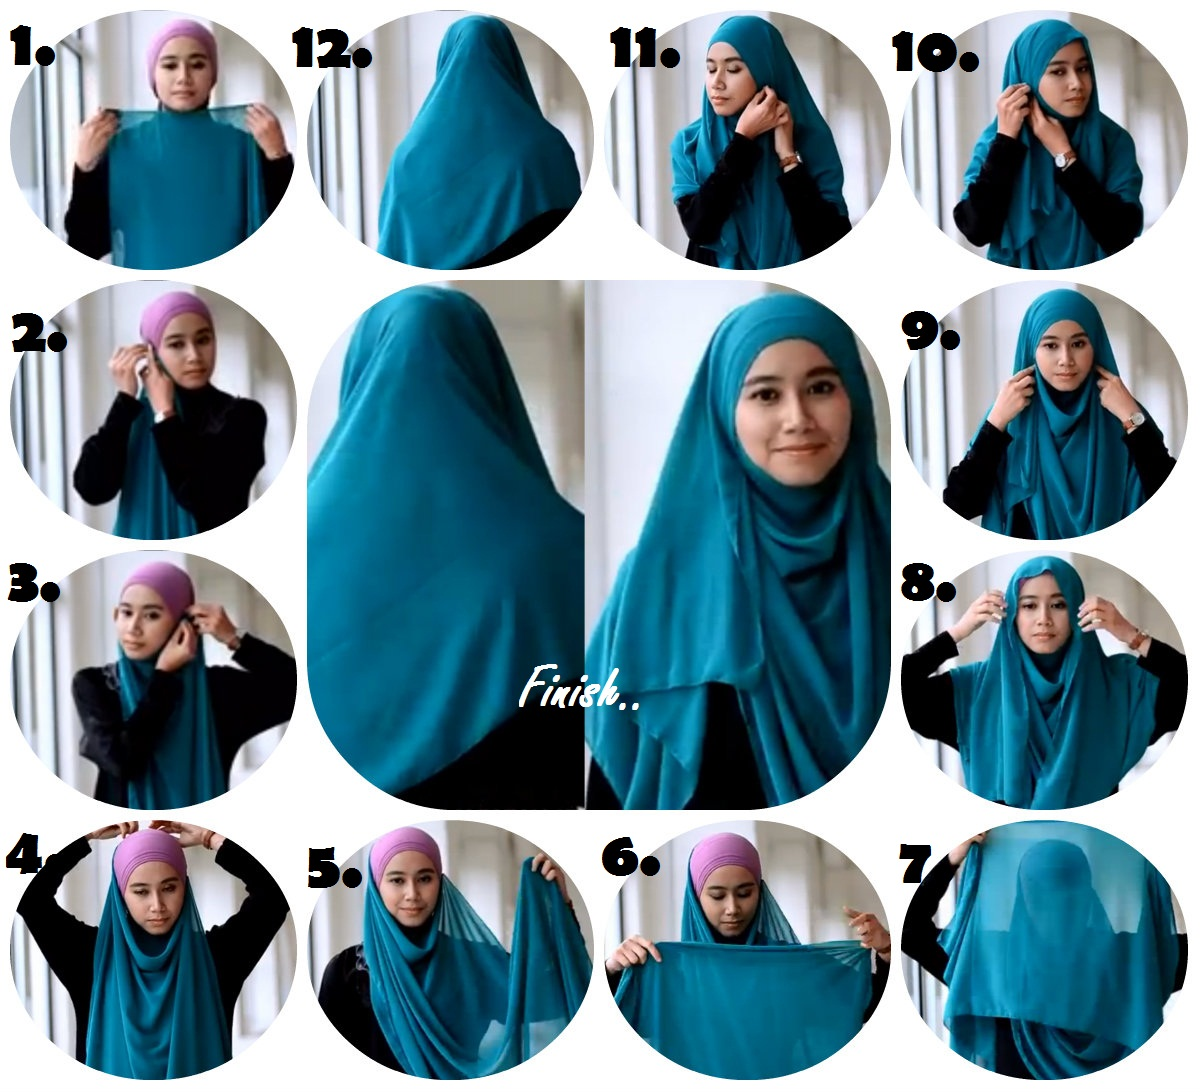 Published Januari 23, 2014 at 1200 × 1092 in cara berhijab